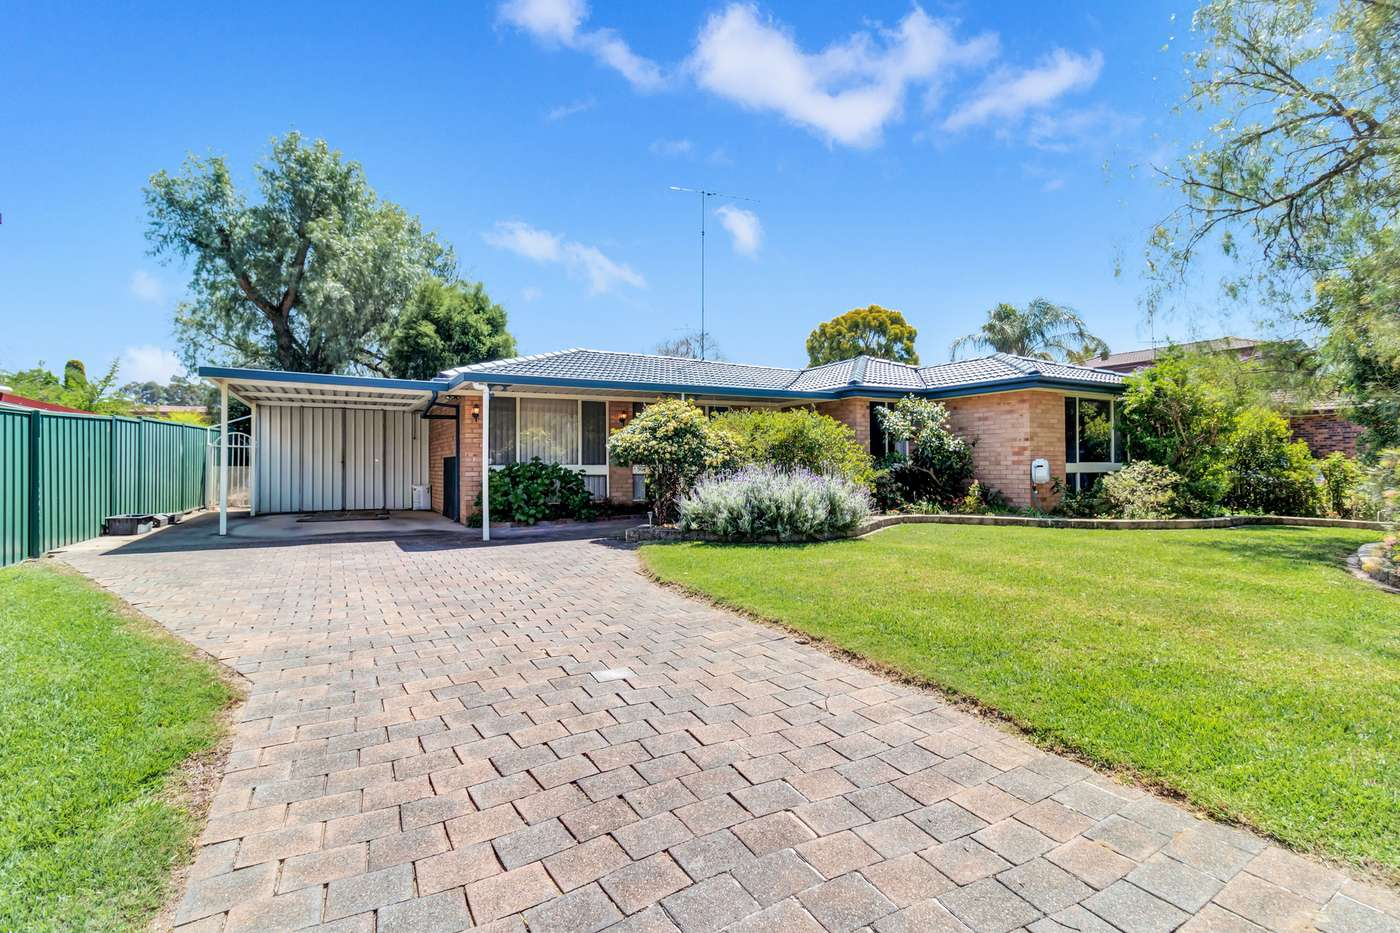 Main view of Homely house listing, 85 Pine Creek Circuit, St Clair, NSW 2759